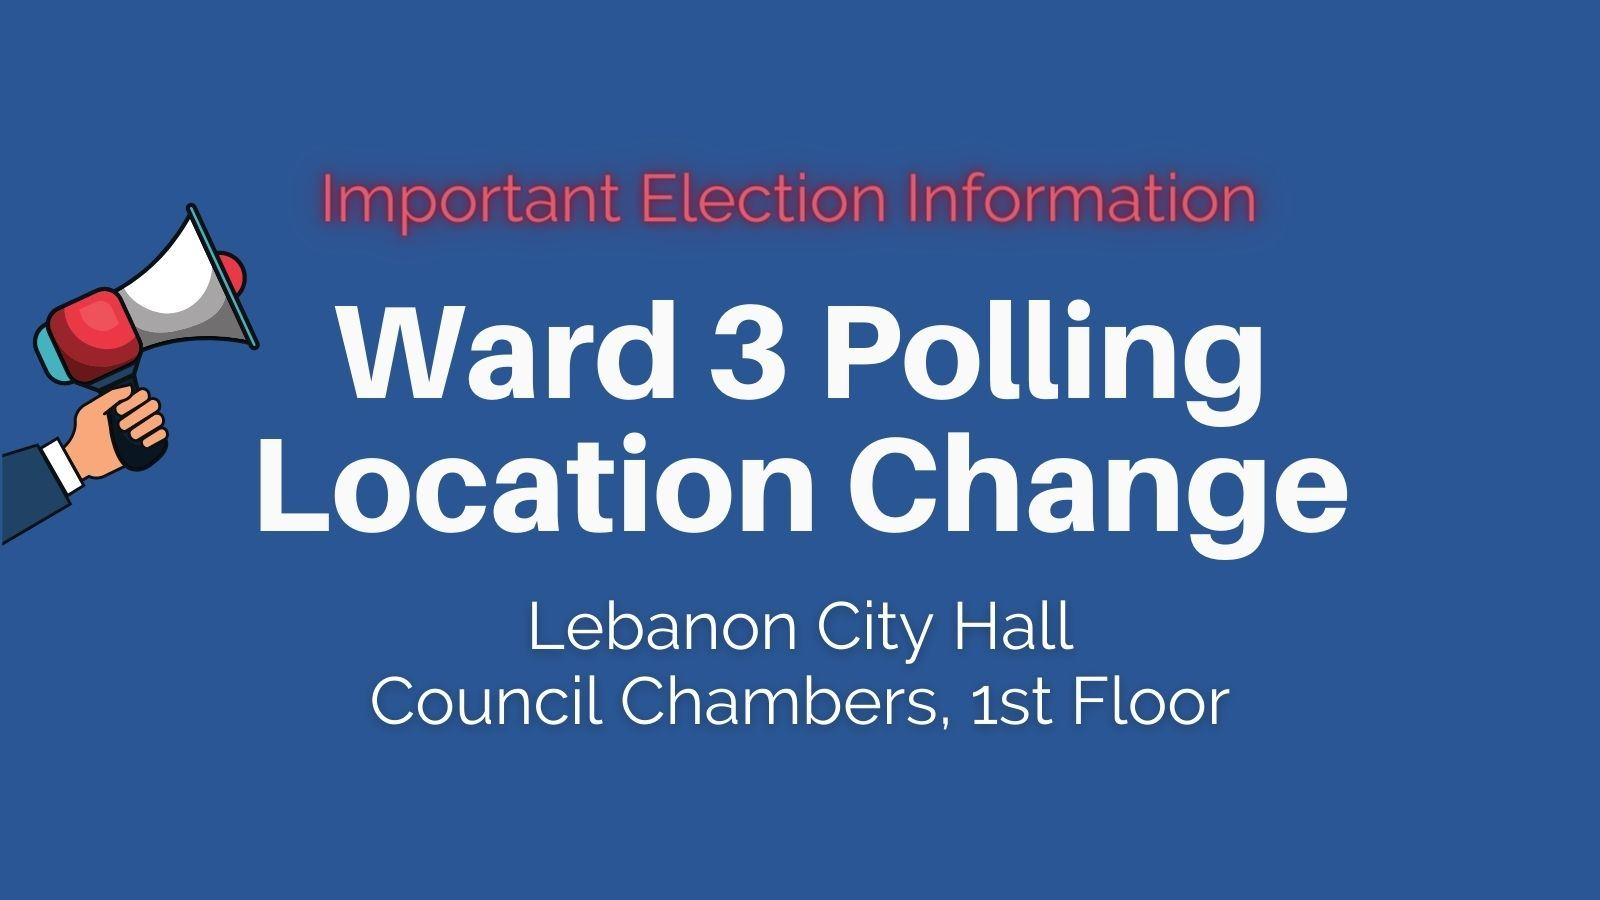 Polling Location Change